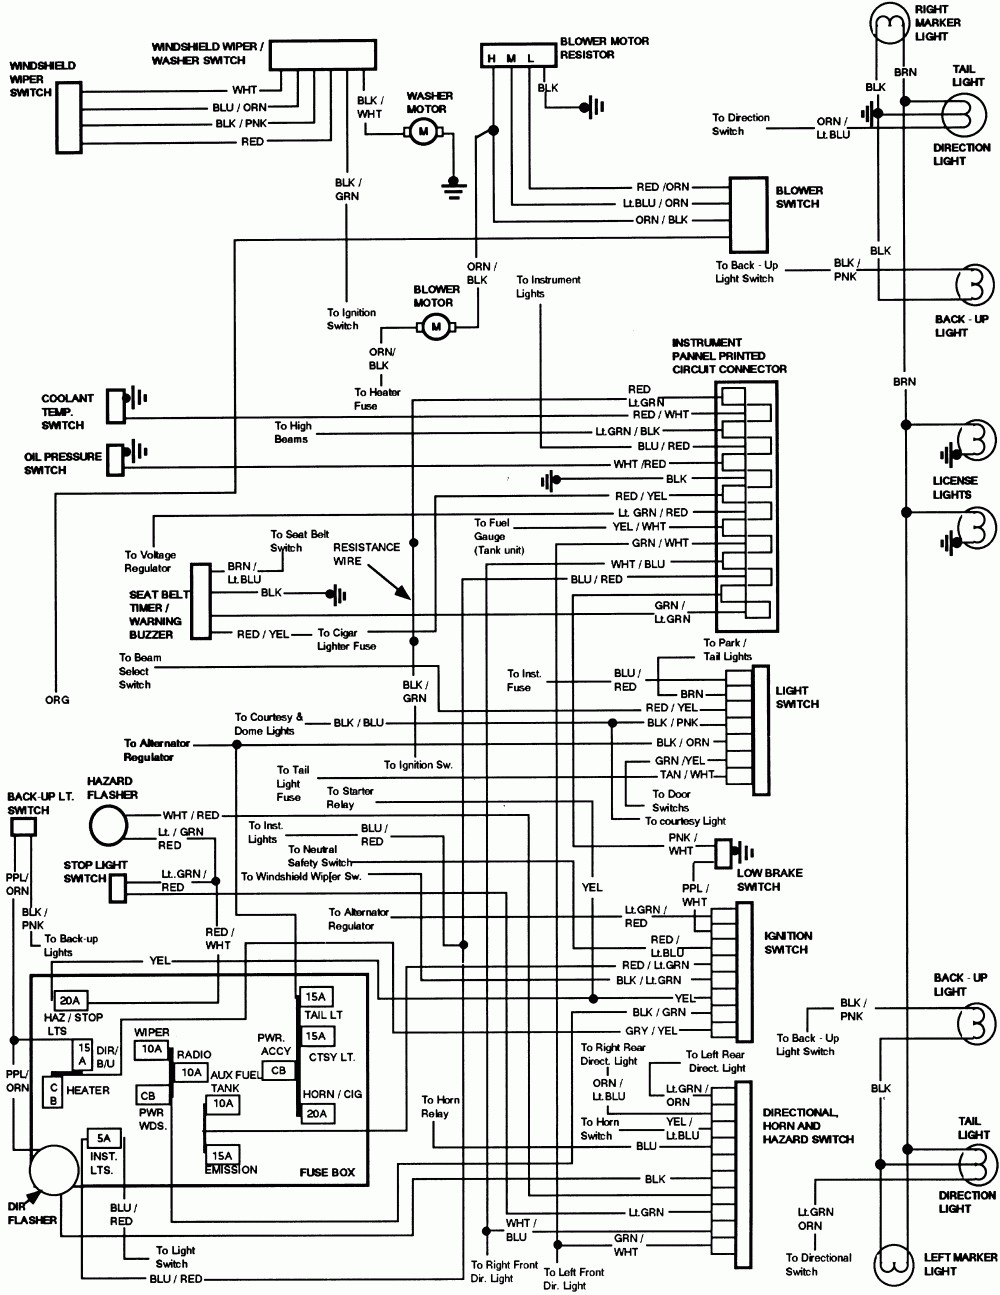 Aprilia Rs 50 Wiring Diagram In Addition 2015 Ford F 250 Stereo Fuel Pump Wire Data Schema Diagrams Further On Rh Abetter Pw